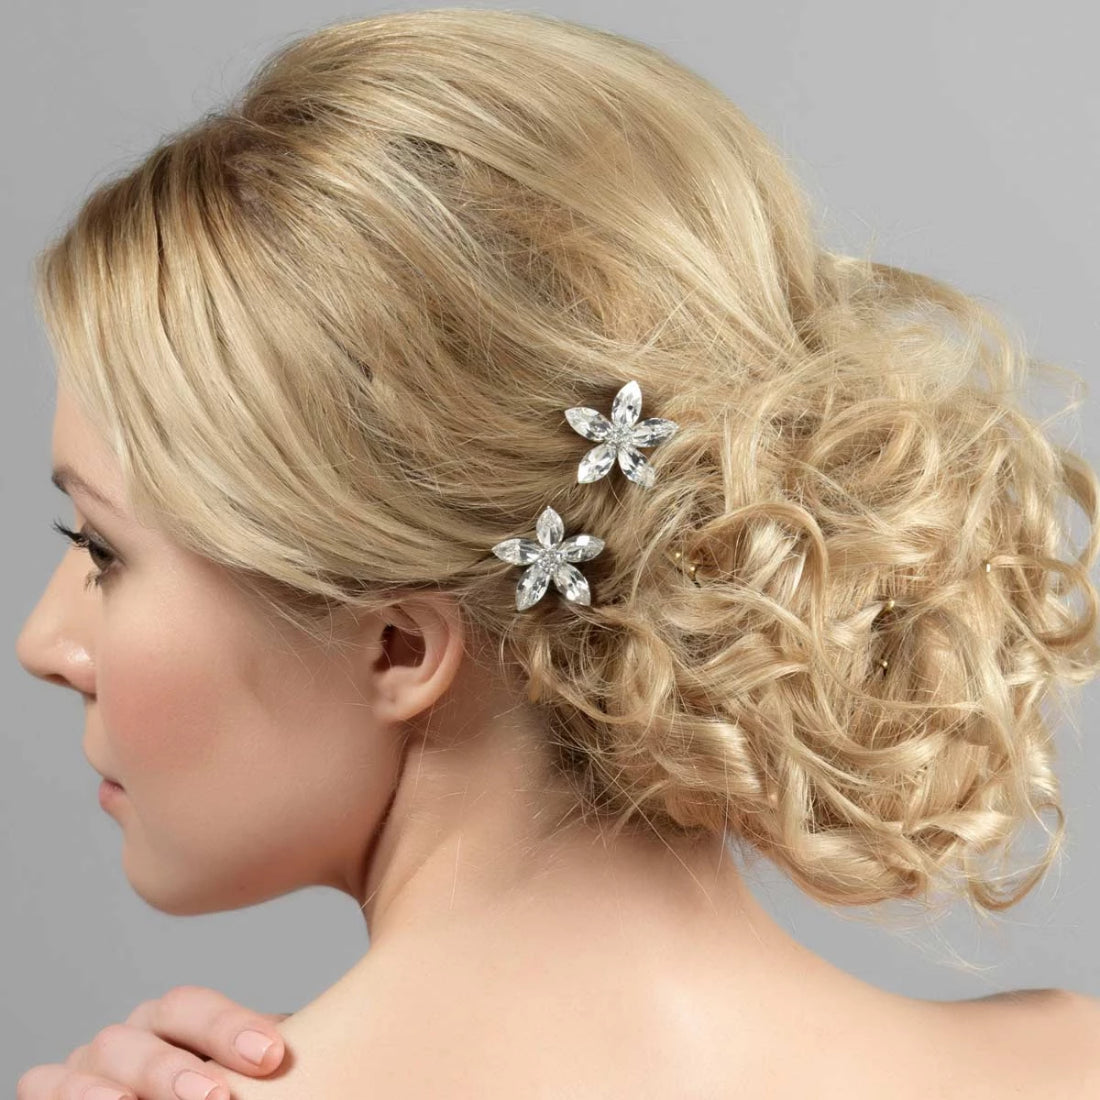 Petals of Romance Gold Hair Combs shown in a tousled wedding chignon